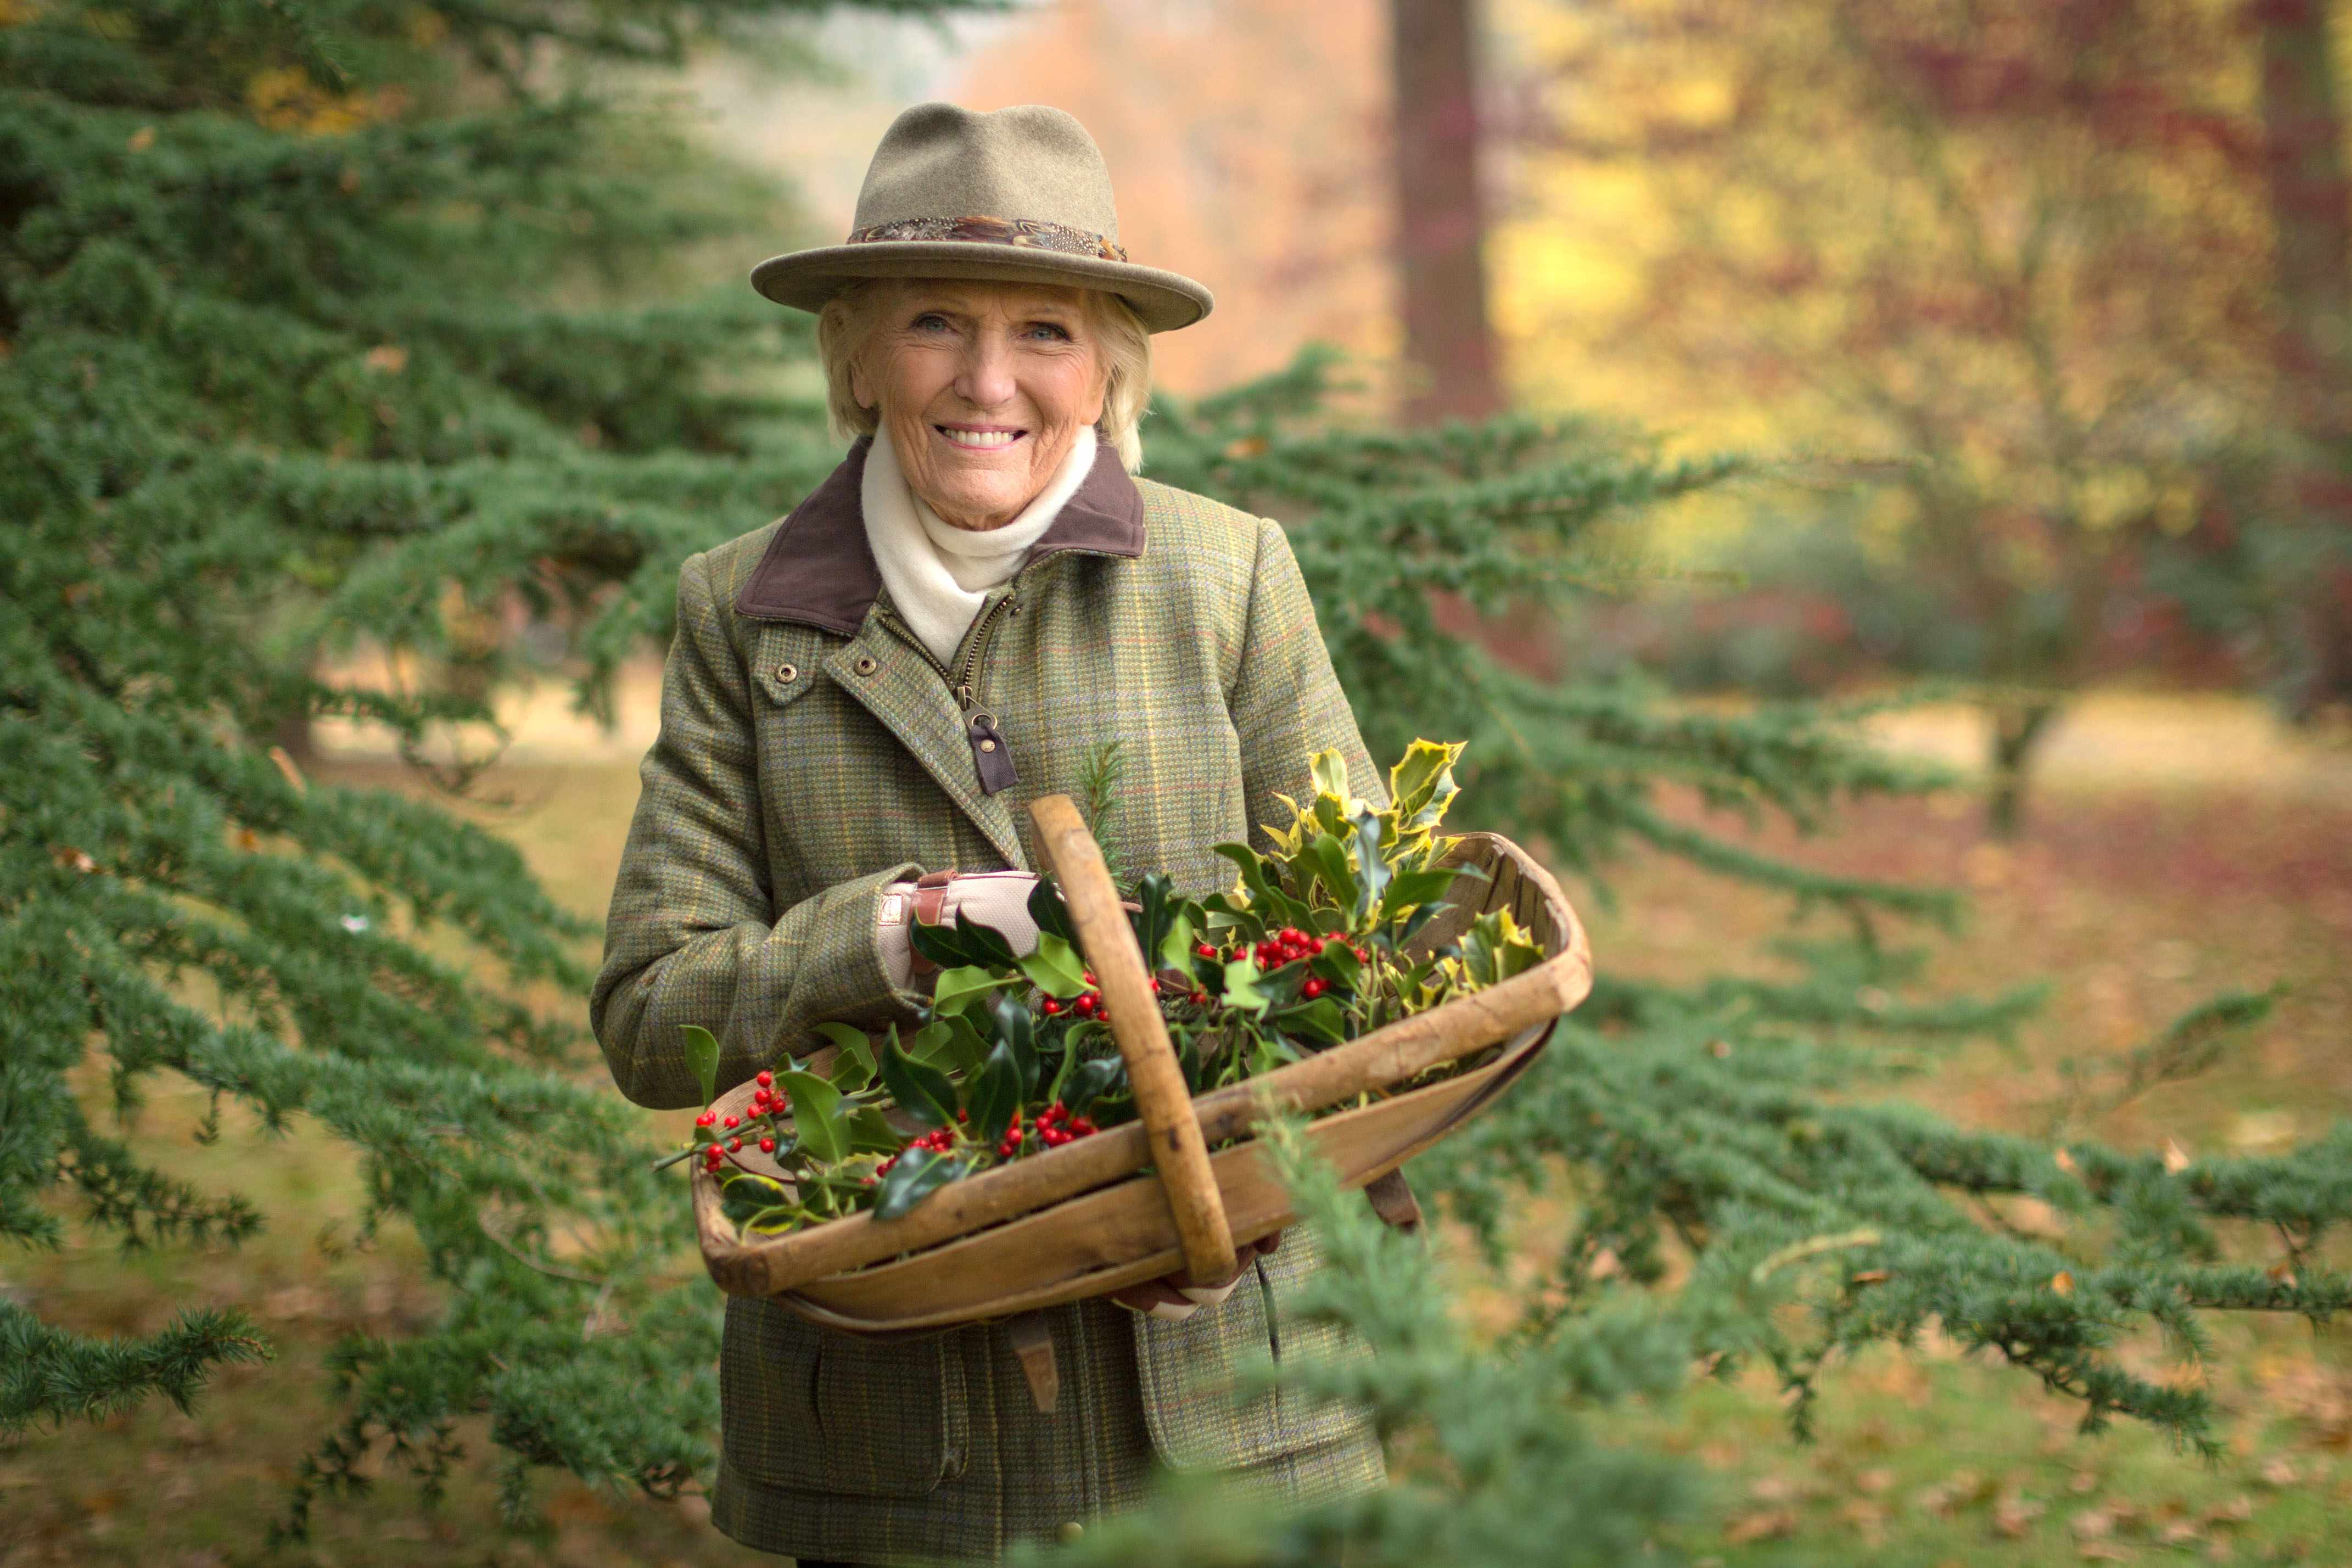 WARNING: Embargoed for publication until 00:00:01 on 27/11/2018 - Programme Name: Mary Berry's Country House at Christmas - TX: n/a - Episode: n/a (No. n/a) - Picture Shows: *STRICTLY EMBARGOED, NOT FOR PUBLICATION UNTIL 00:01HRS TUESDAY 27TH NOVEMBER 2018* Mary Berry - (C) Shine TV Ltd - Photographer: Craig Harman